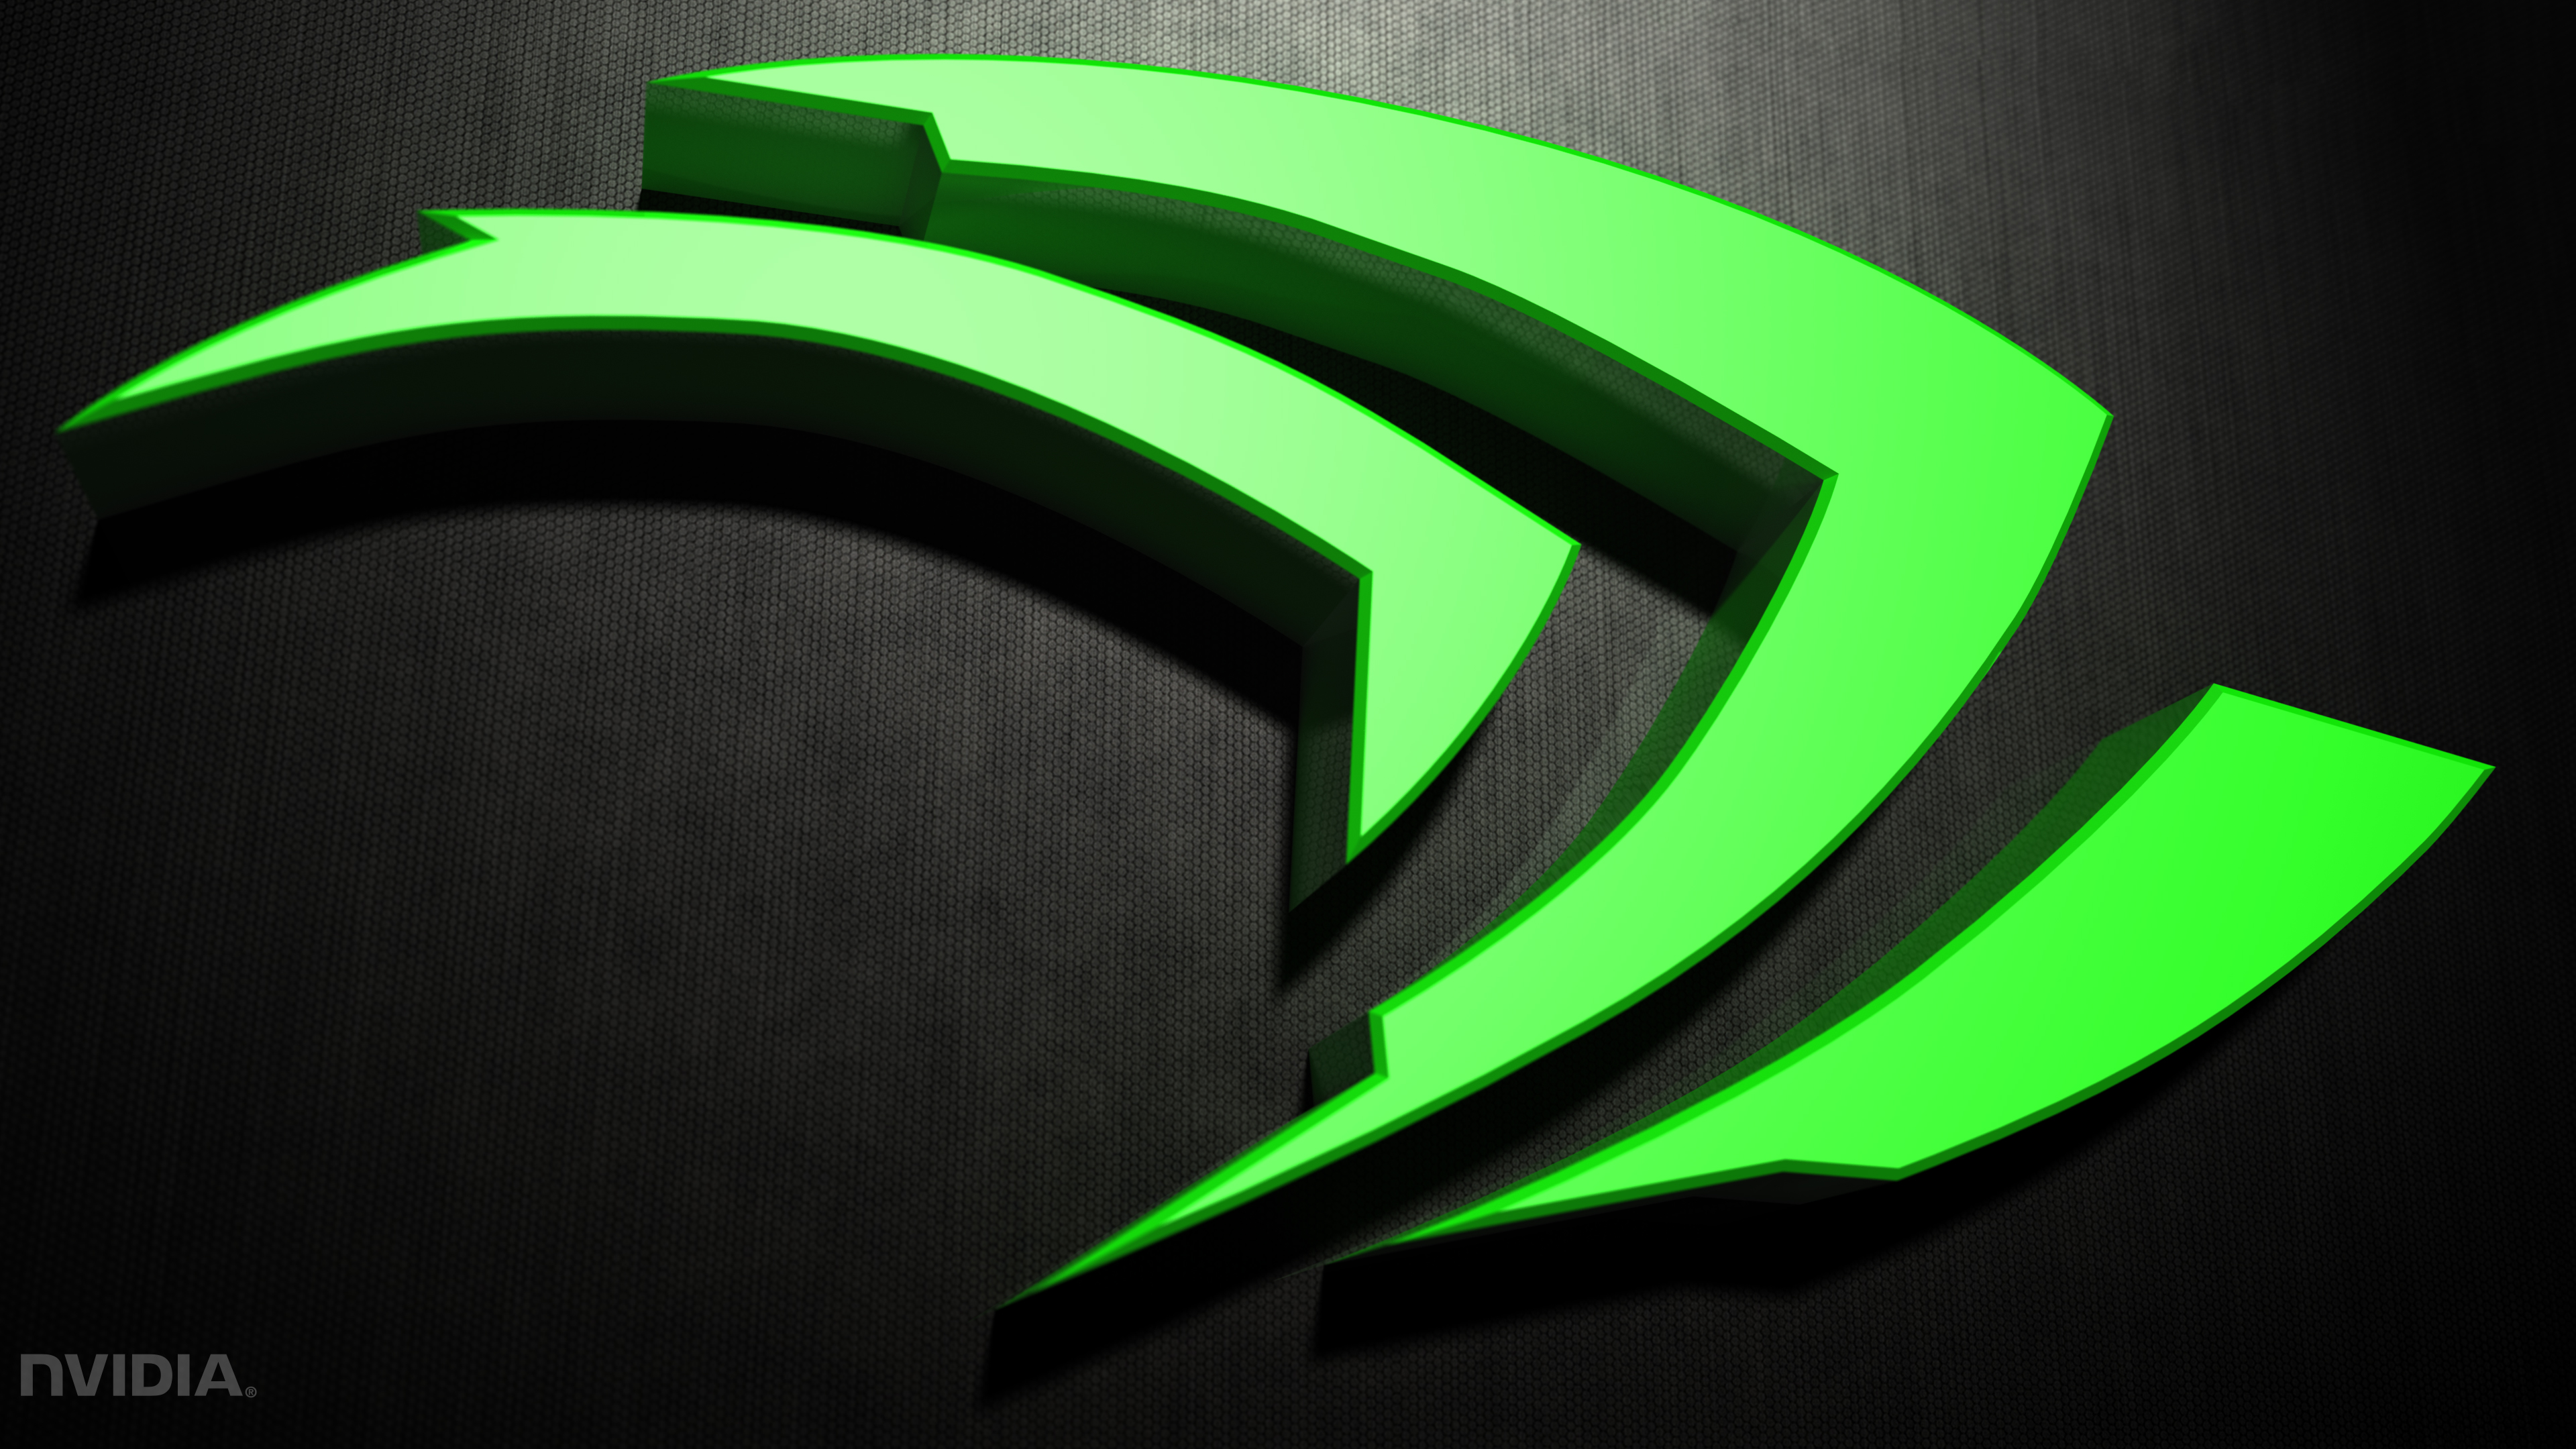 4k nvidia wallpaper wallpapersafari for Immagini desktop 4k